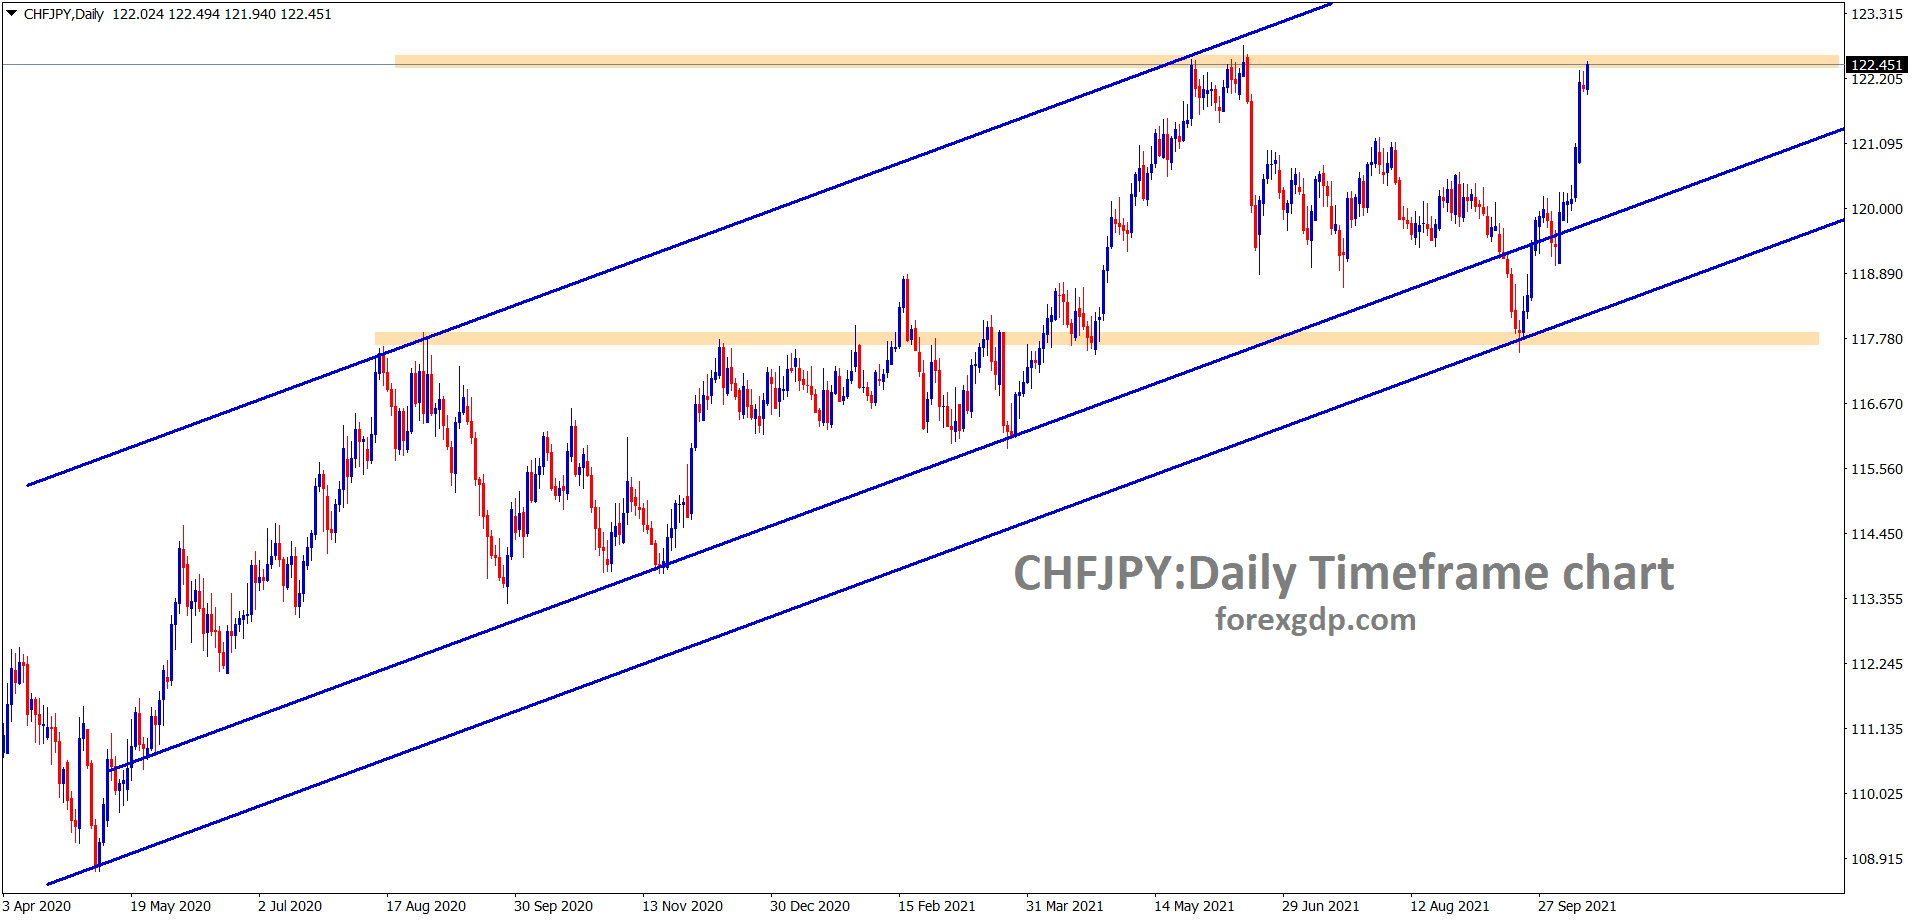 CHFJPY hits the resistance area again wait for breakout or reversal